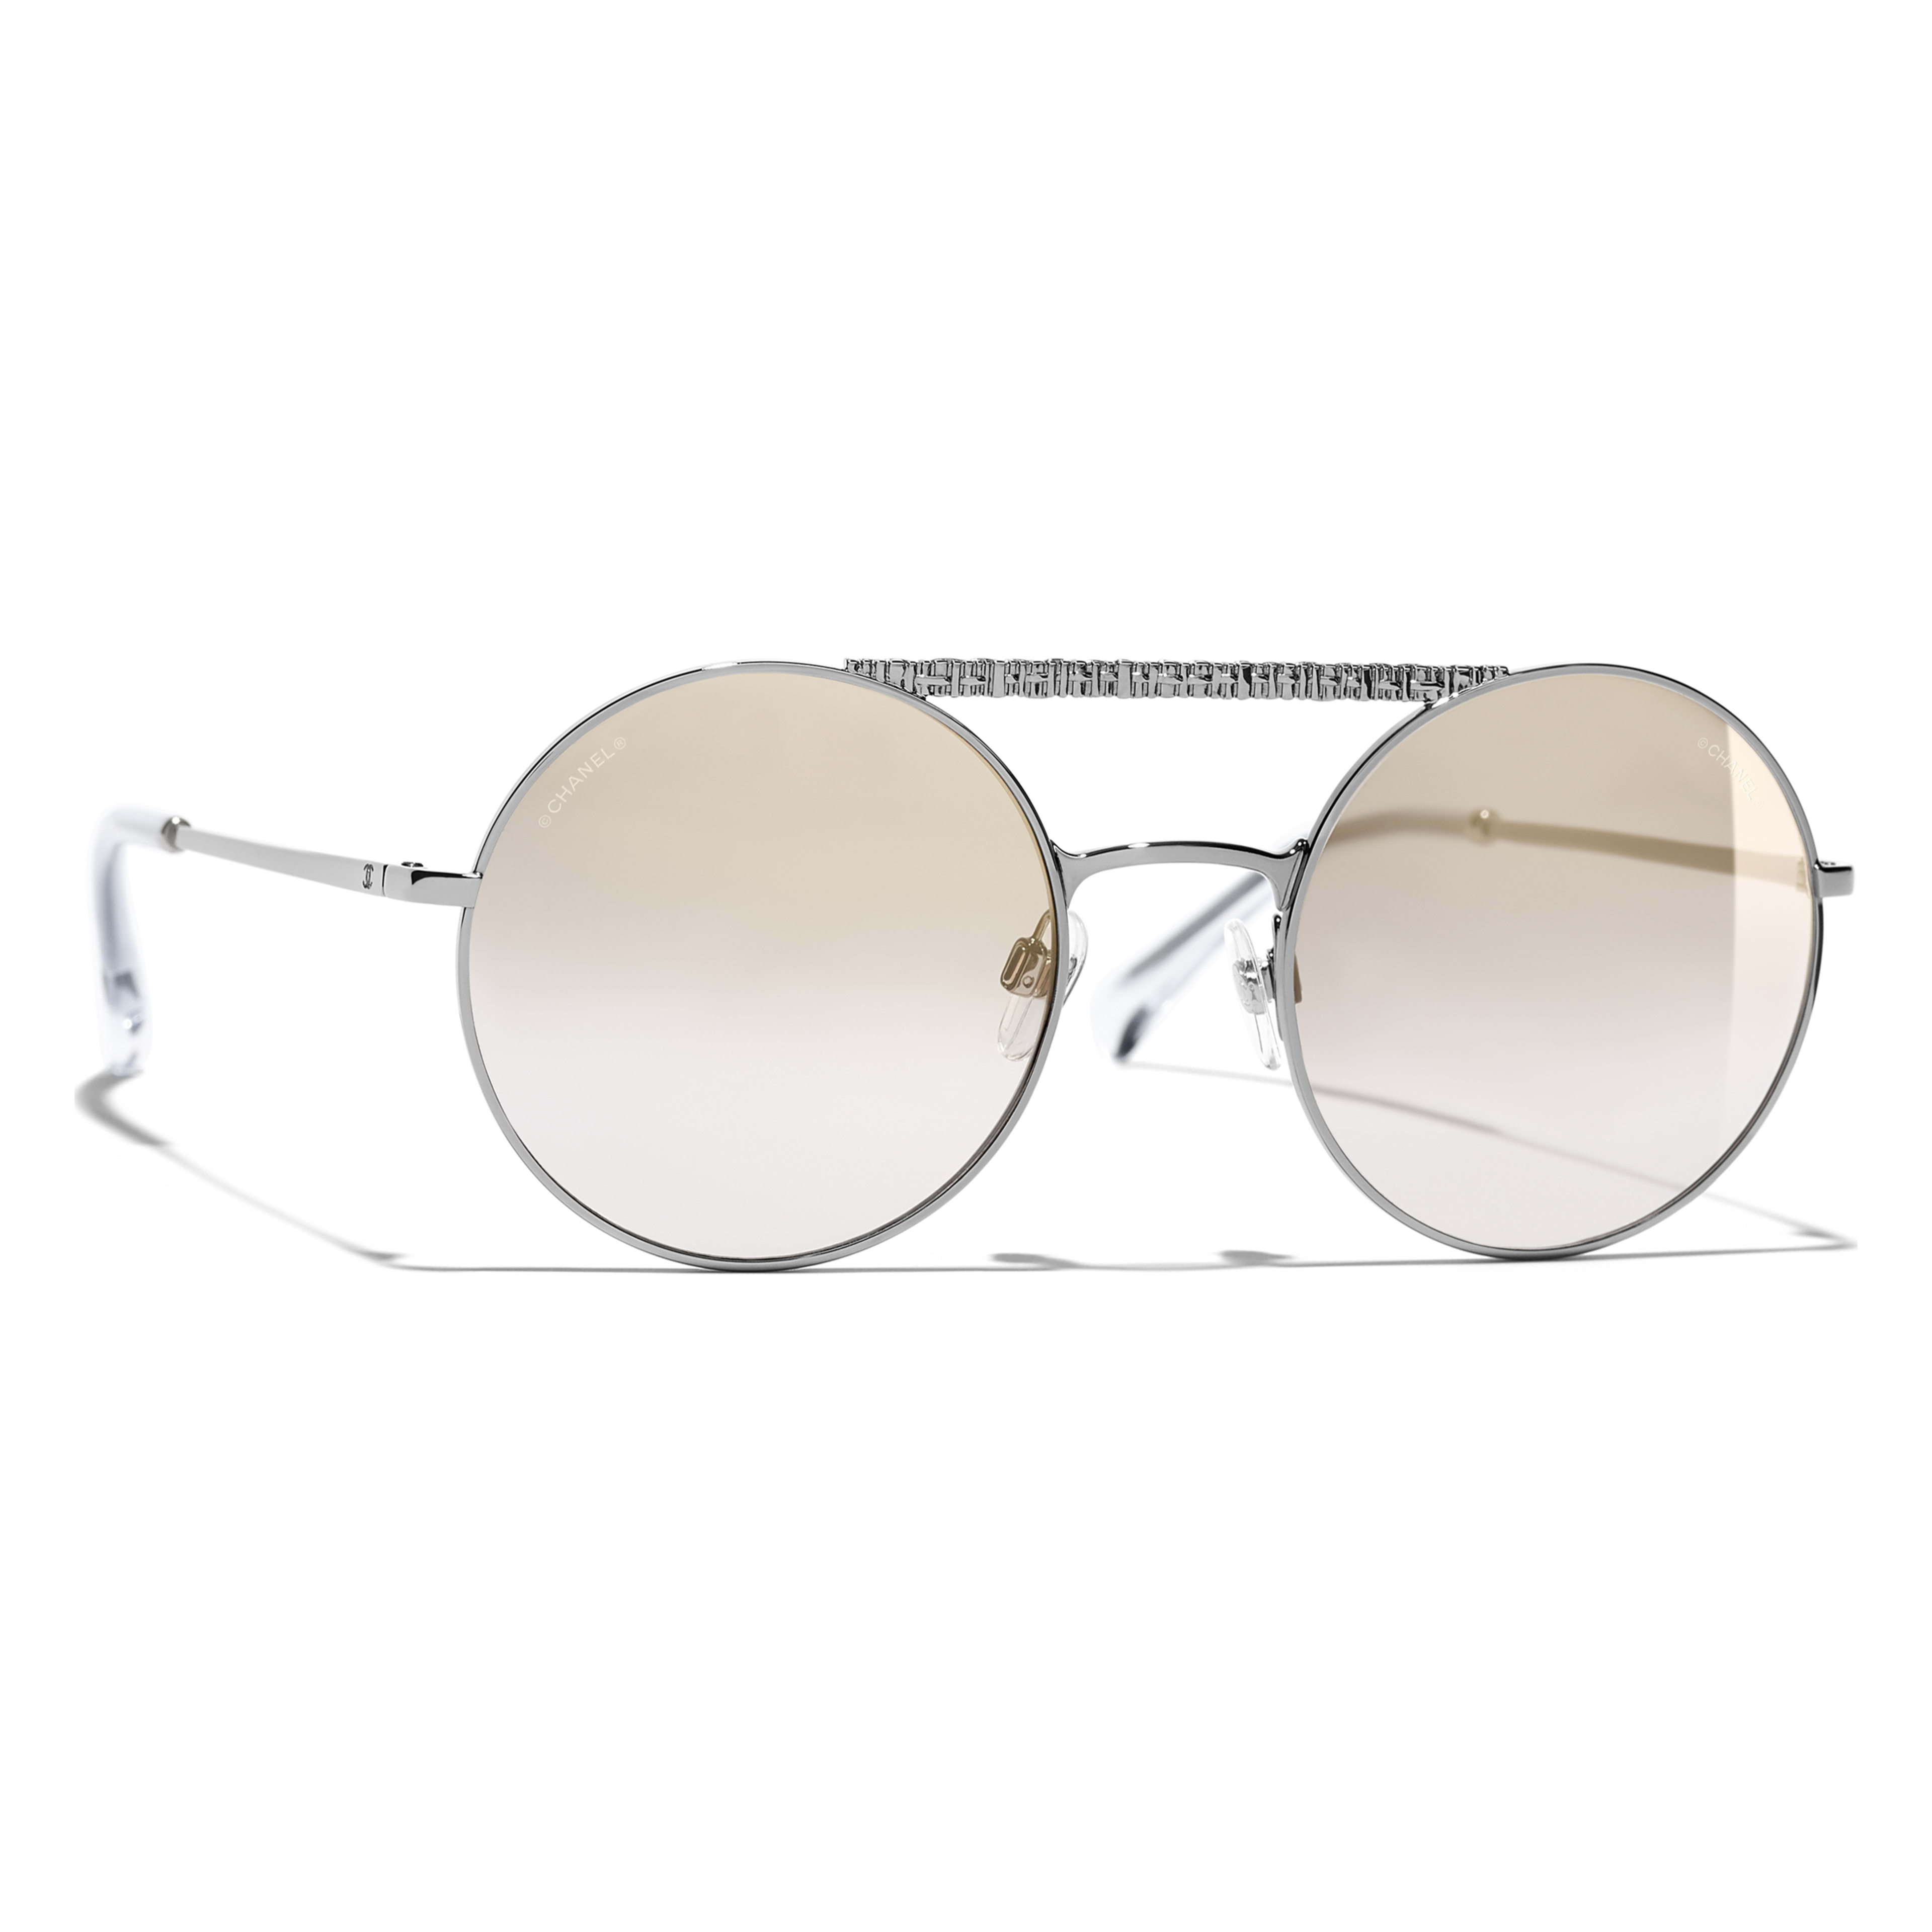 1840c4be15 See other colors Dark Silver frame. Beige mirror lenses.